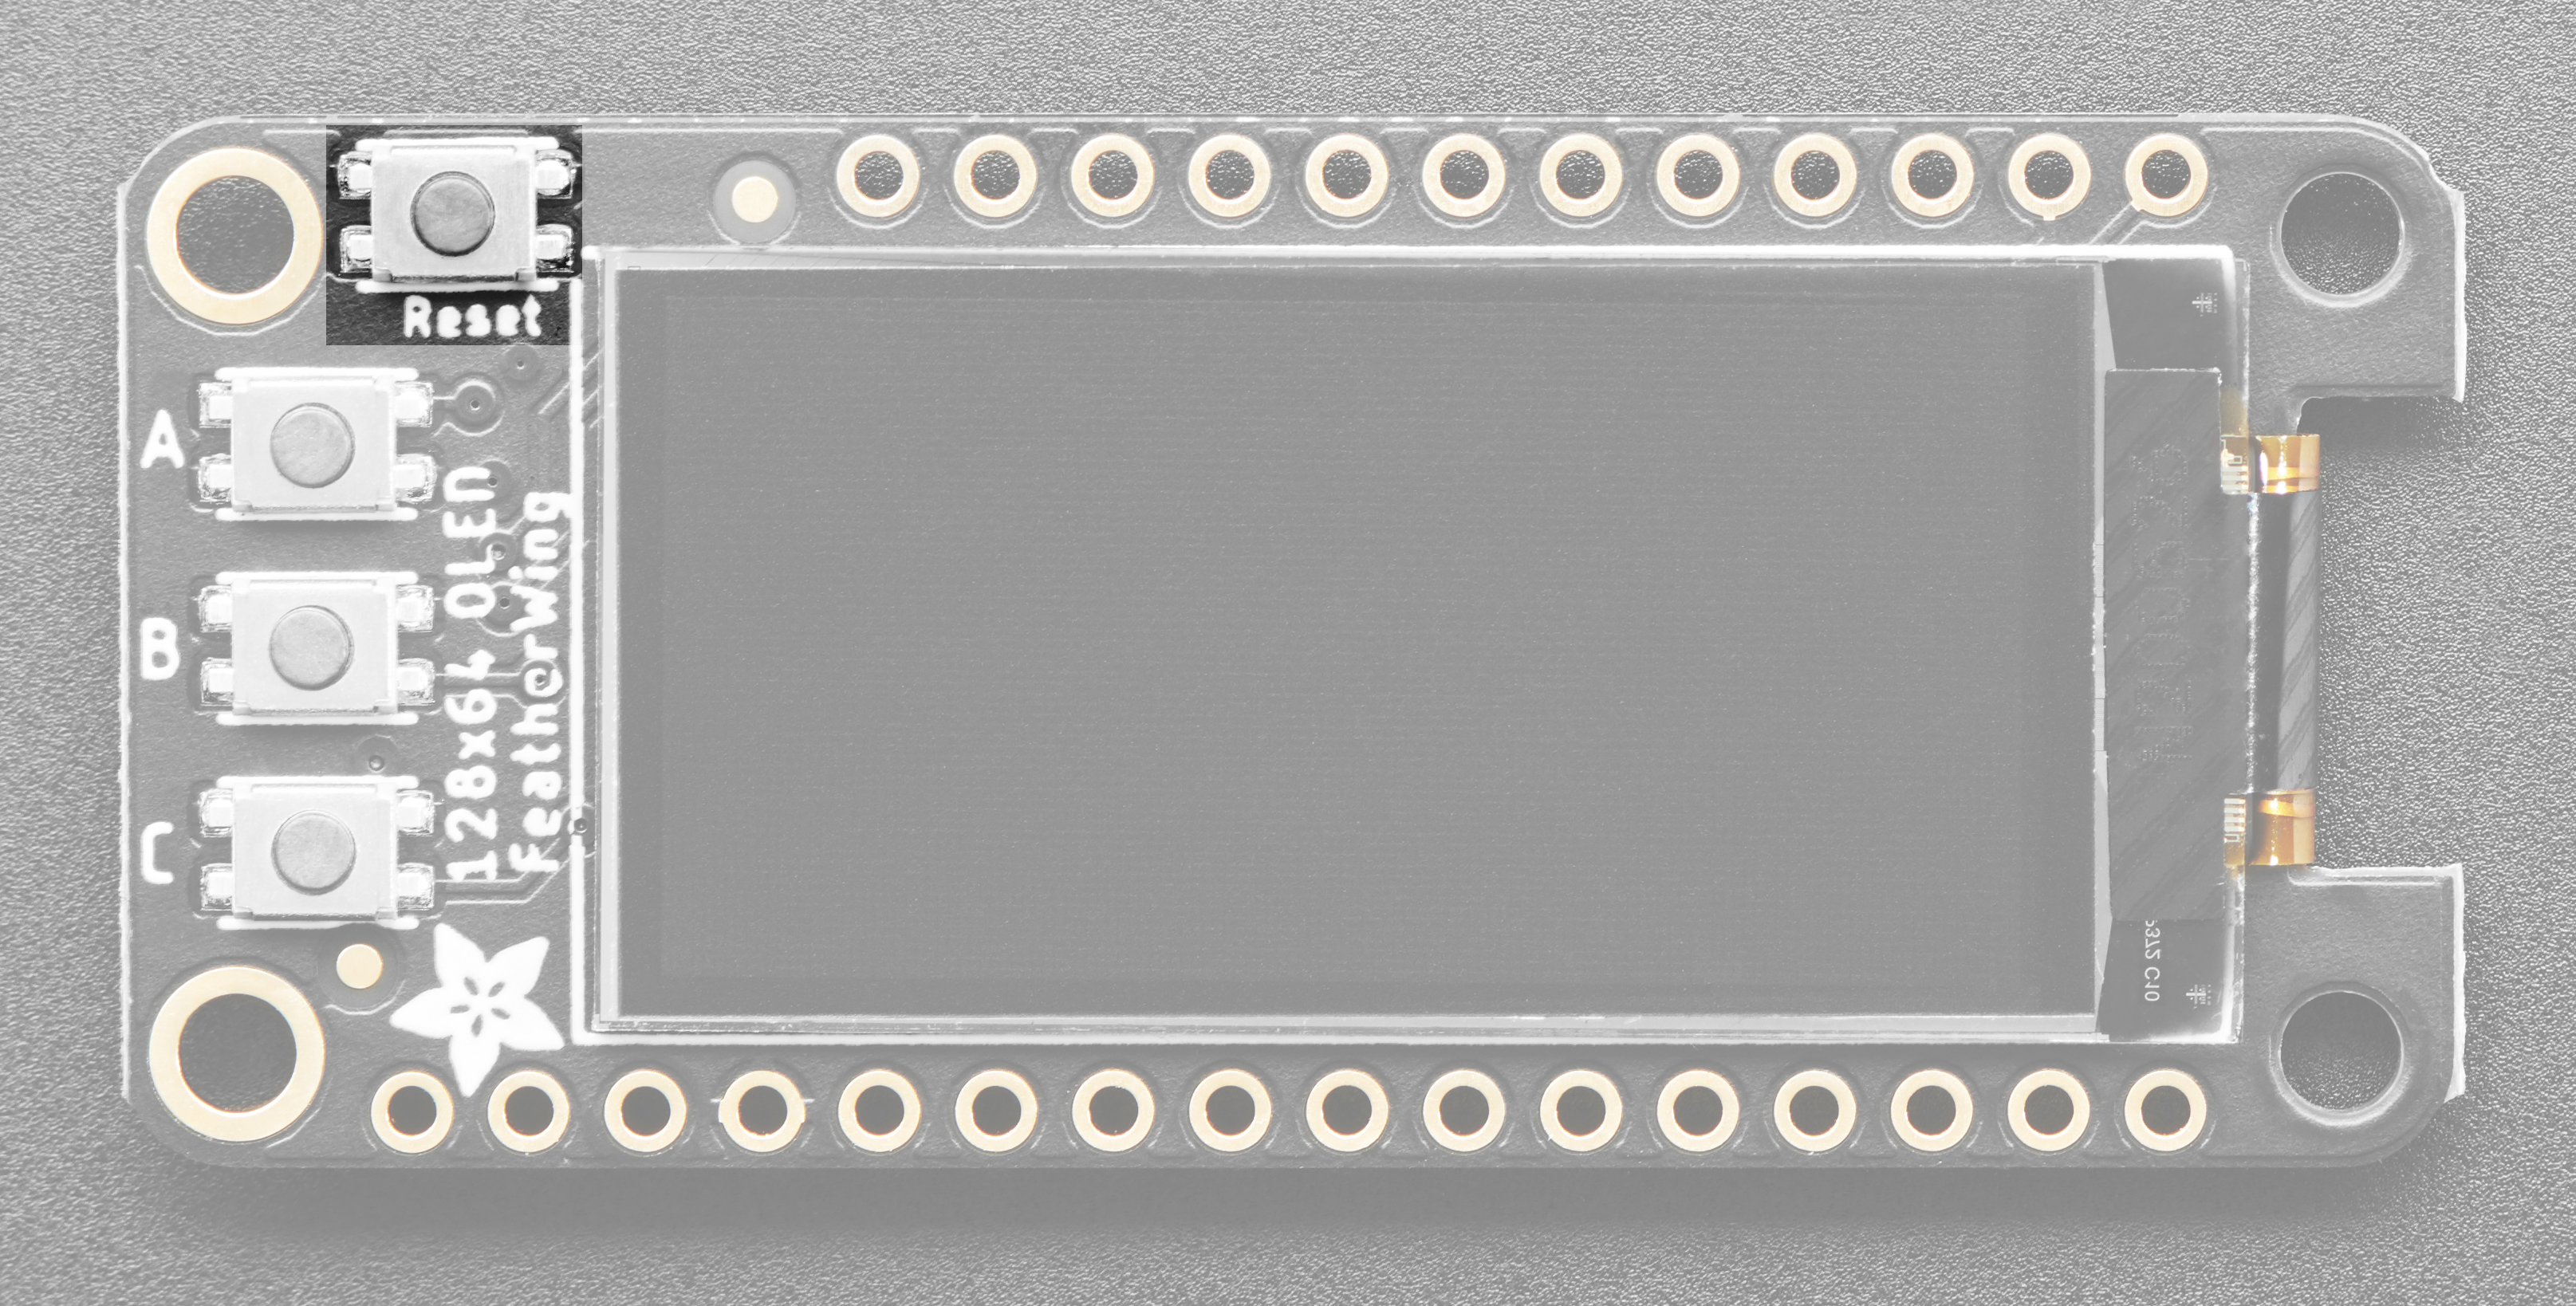 adafruit_products_FW_OLED_128x64_top_pinouts_reset_button.jpg